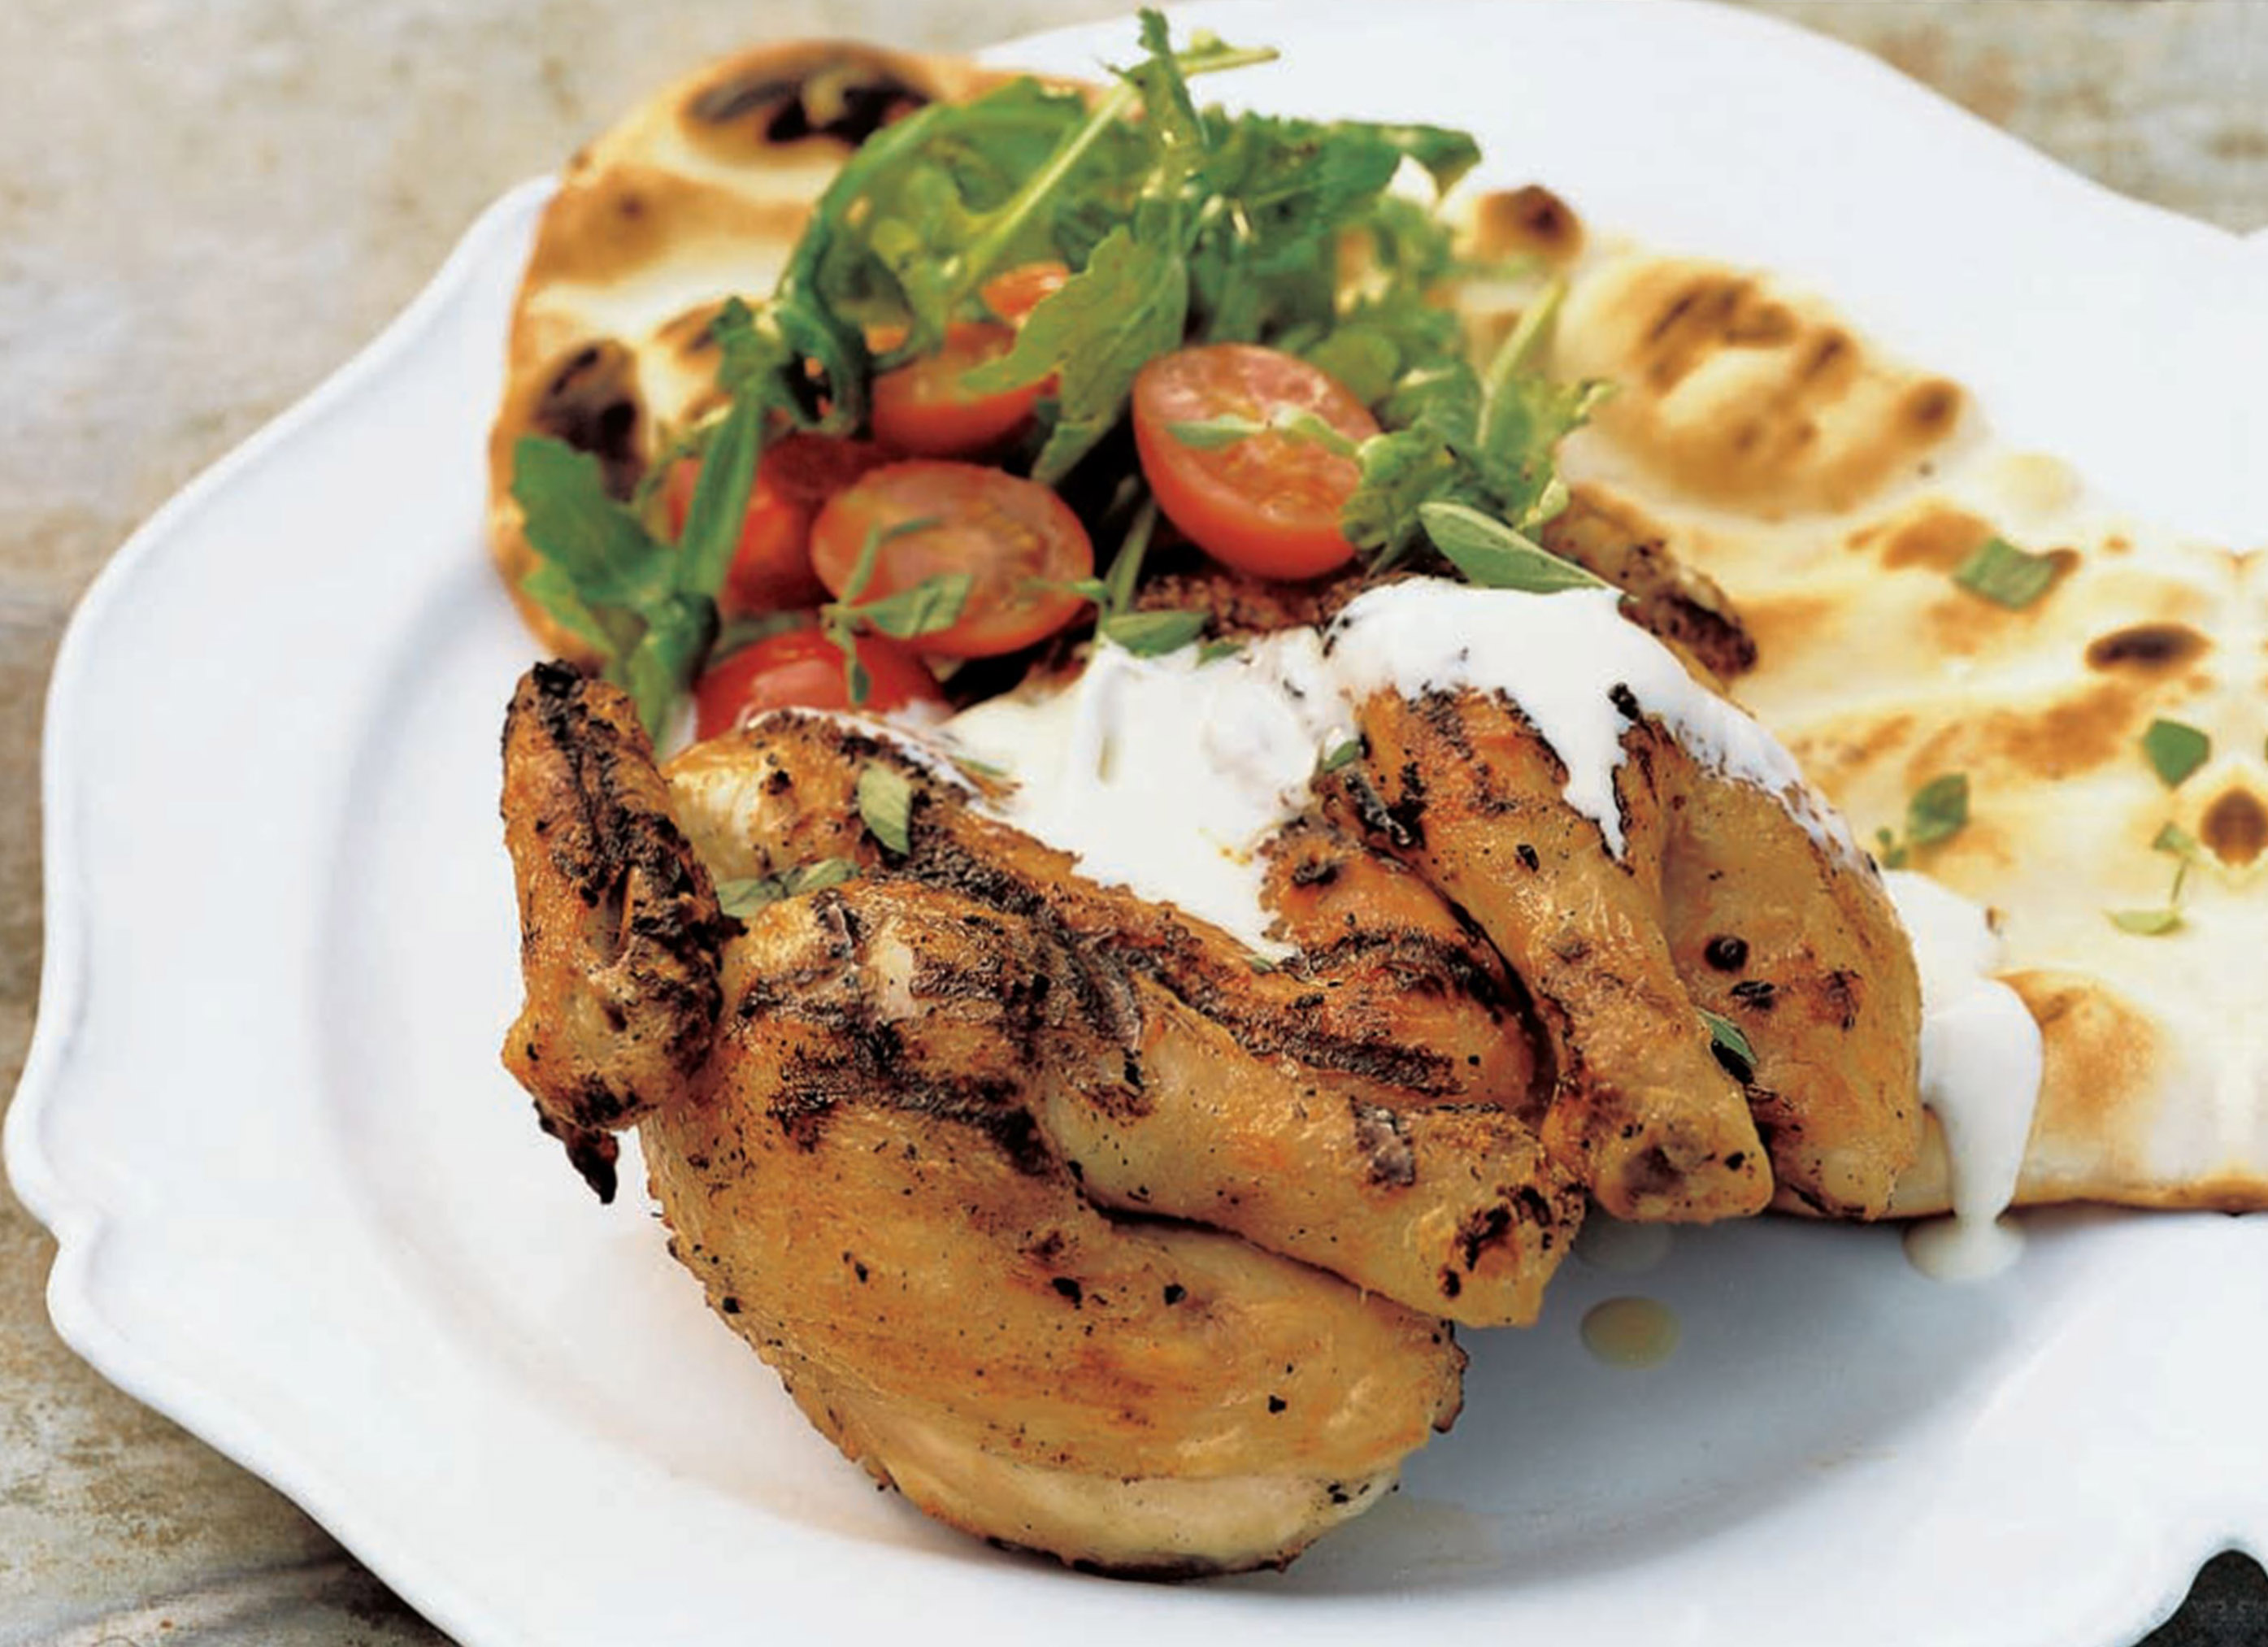 Grilled poussins with lemon, marjoram, flat bread and garlicky yoghurt